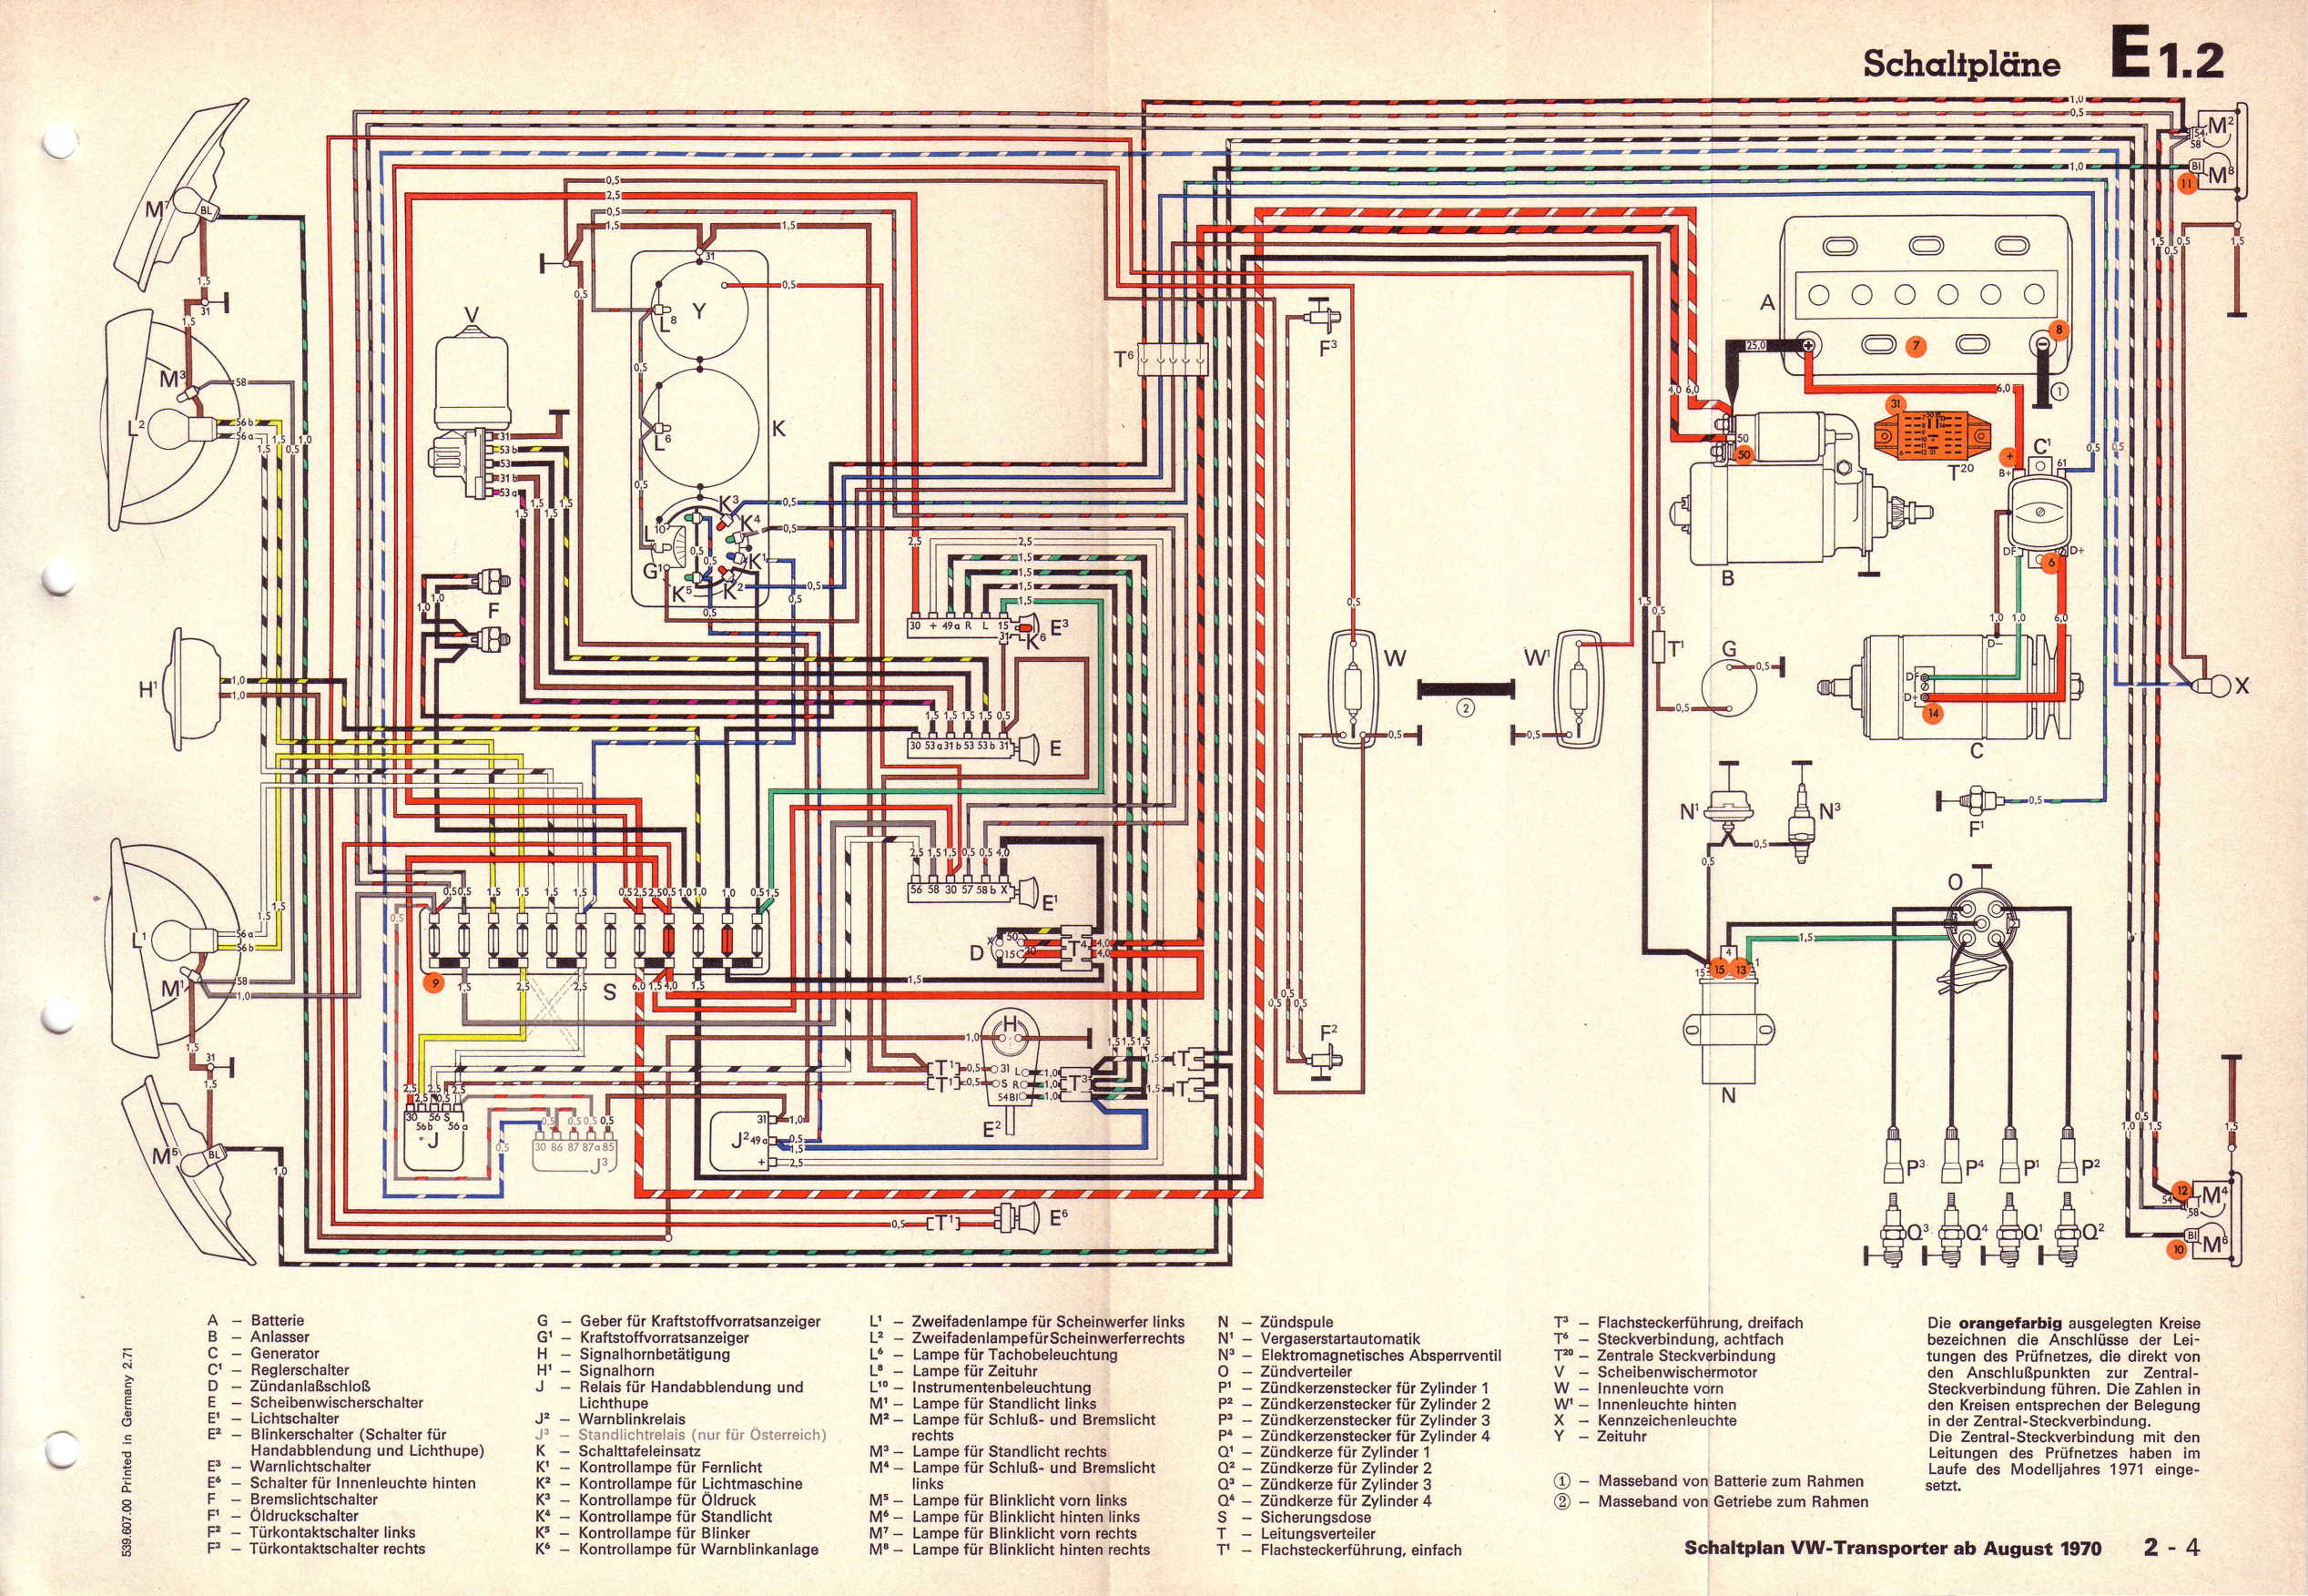 Vw T2 Wiring Diagram 1977 Great Design Of Beetle 1971 Rd 1970 Volkswagen Datsun 240z 64 Bug Super